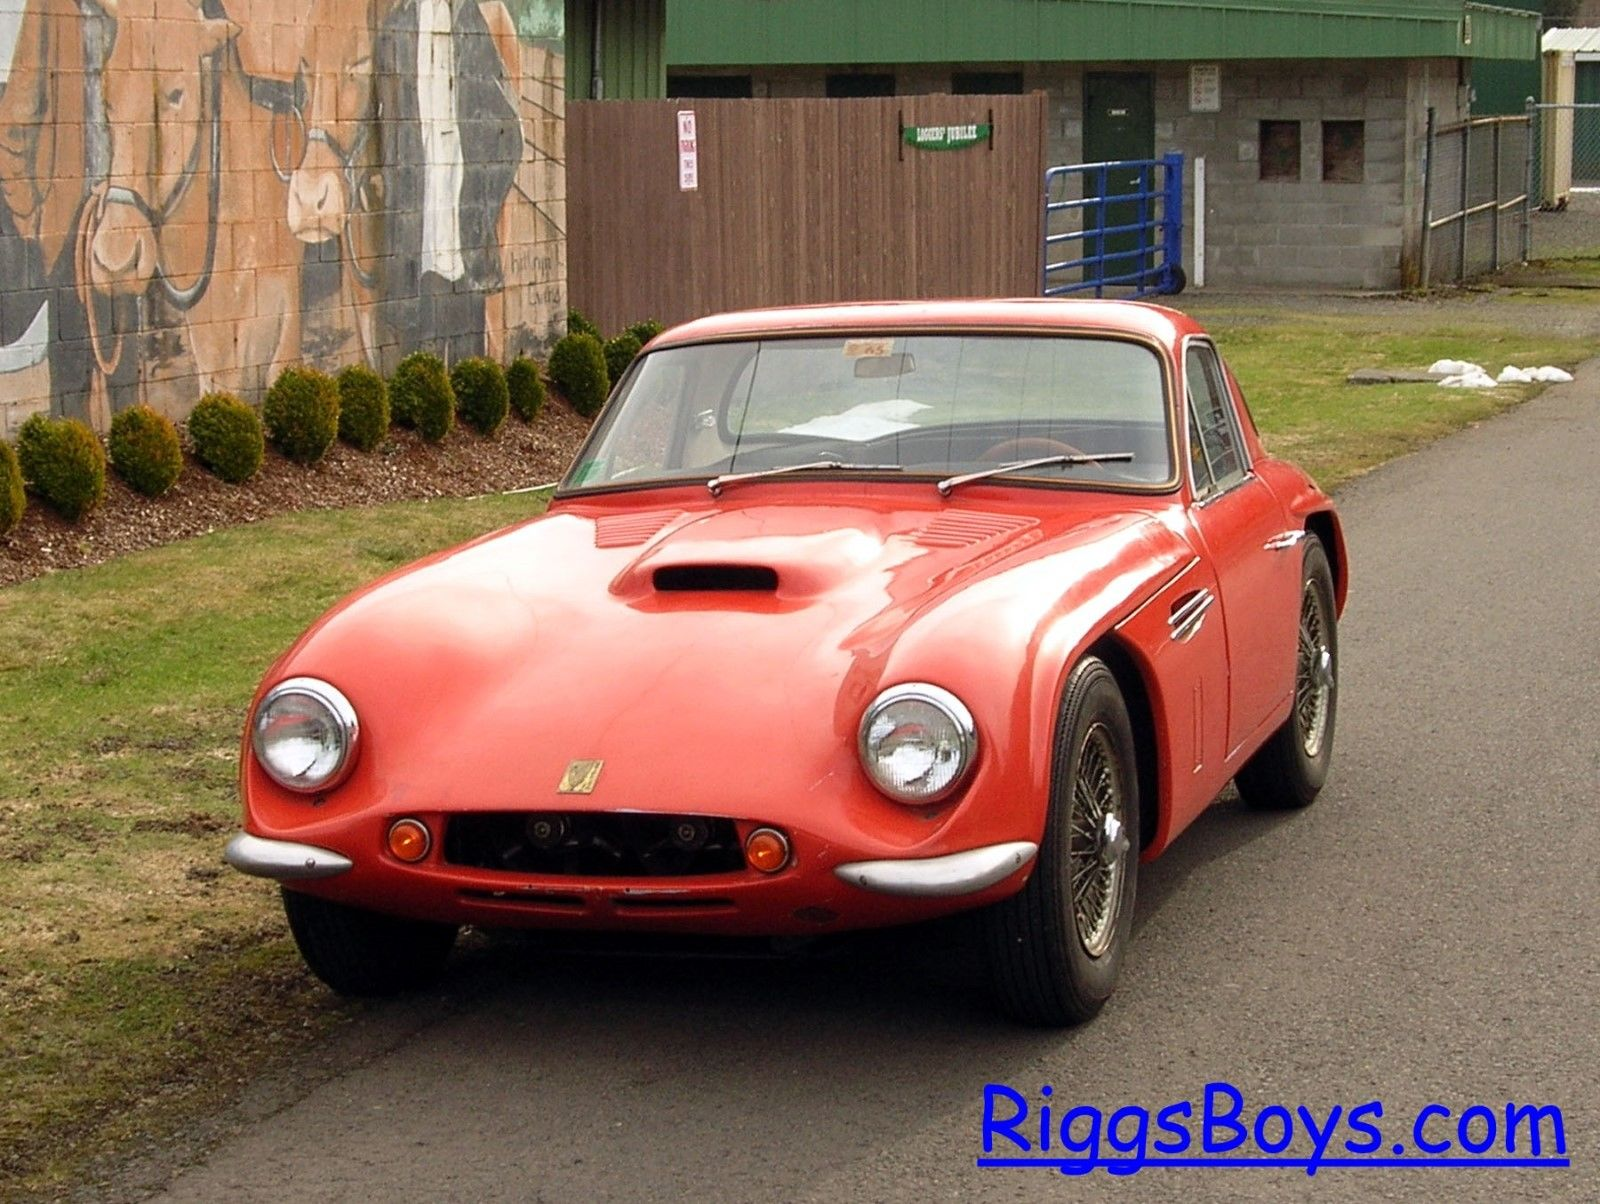 1965 tvr griffith former drag racing car for sale new england dragway. Black Bedroom Furniture Sets. Home Design Ideas